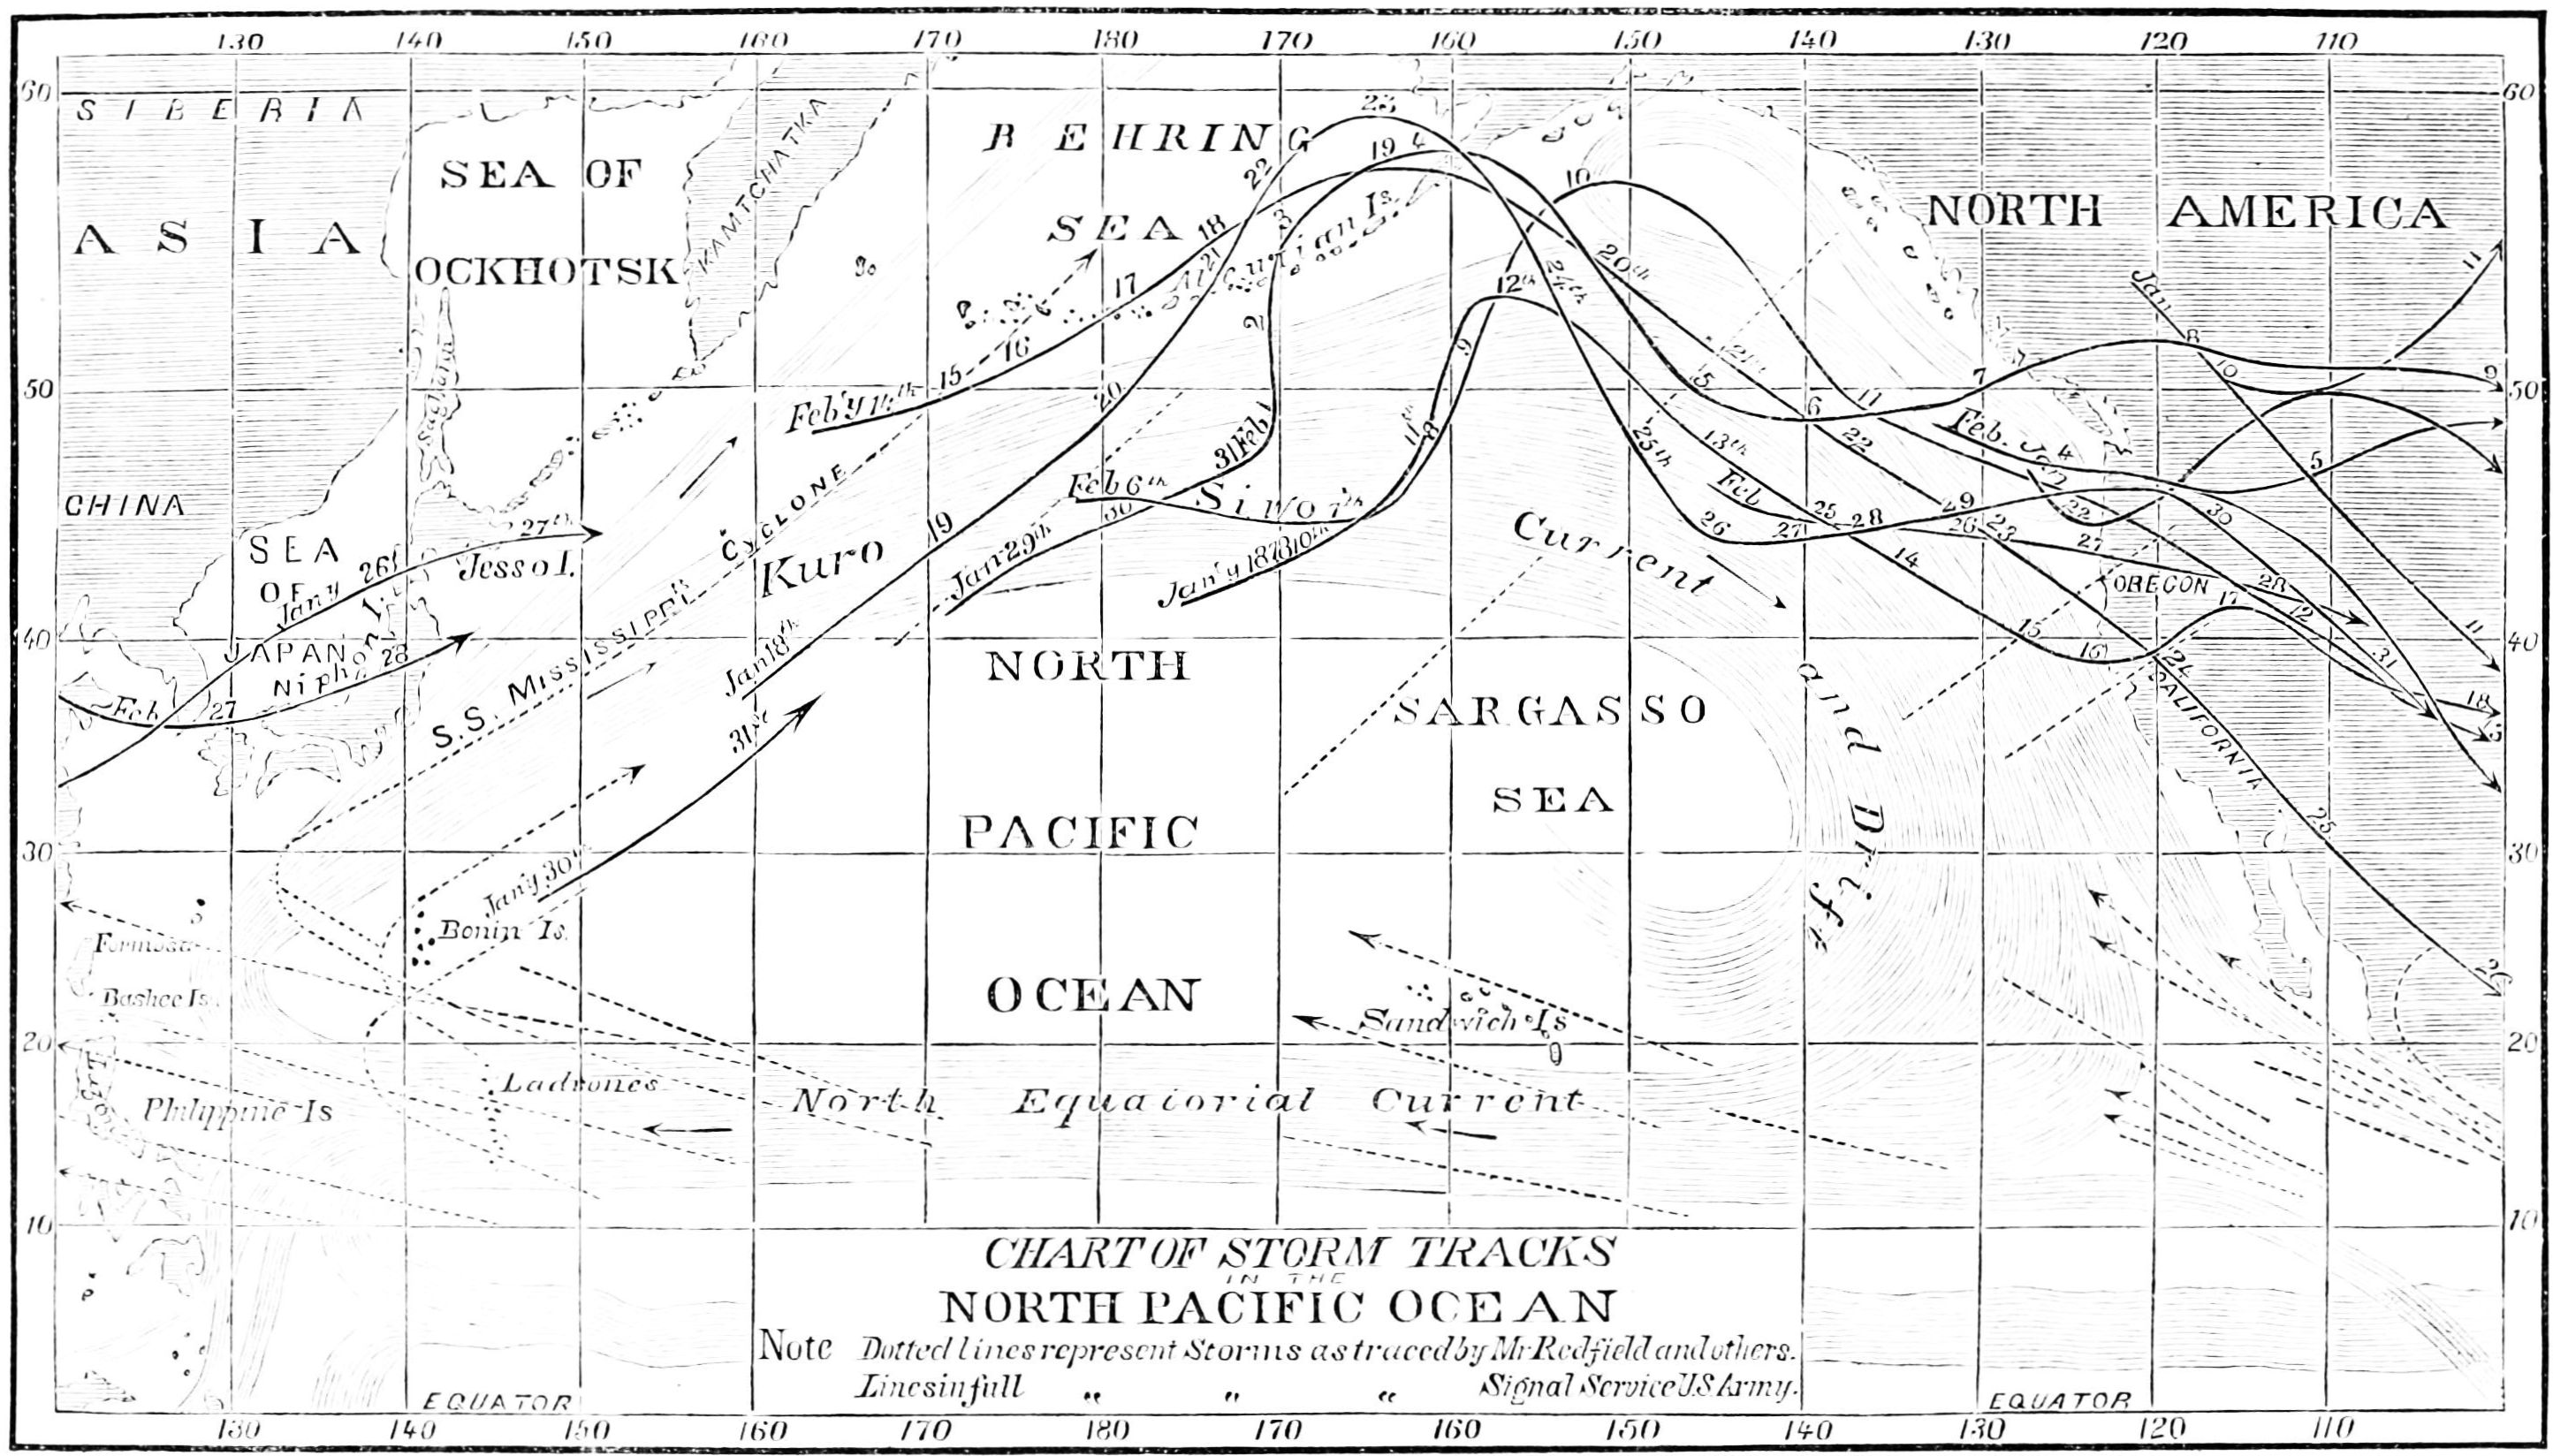 Aviation Weather Charts: PSM V16 D321 Chart of storm tracks of north pacific ocean.jpg ,Chart